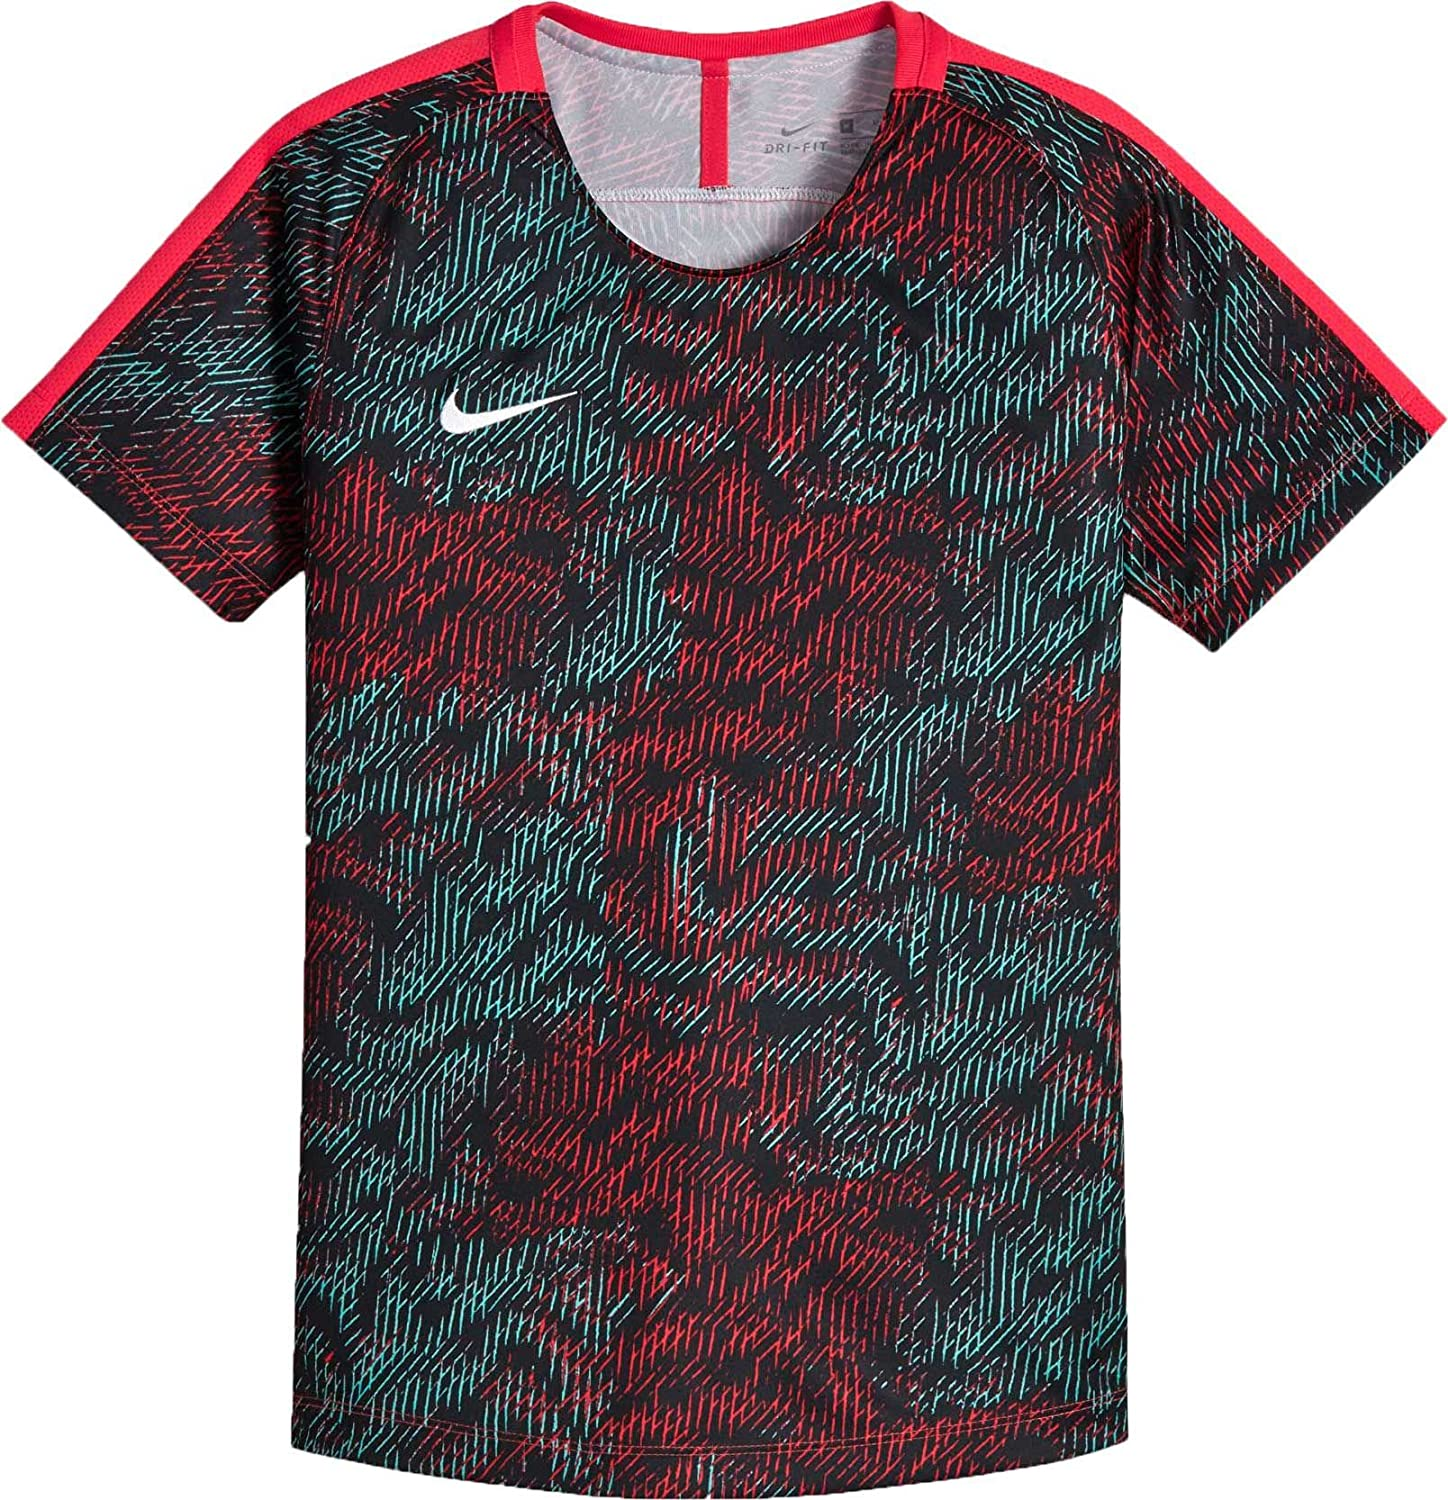 Nike Girls ' Dry AcademyサッカーTシャツ B0798JWBH9 X-Small|Sirenred/Sirenred/White Sirenred/Sirenred/White X-Small